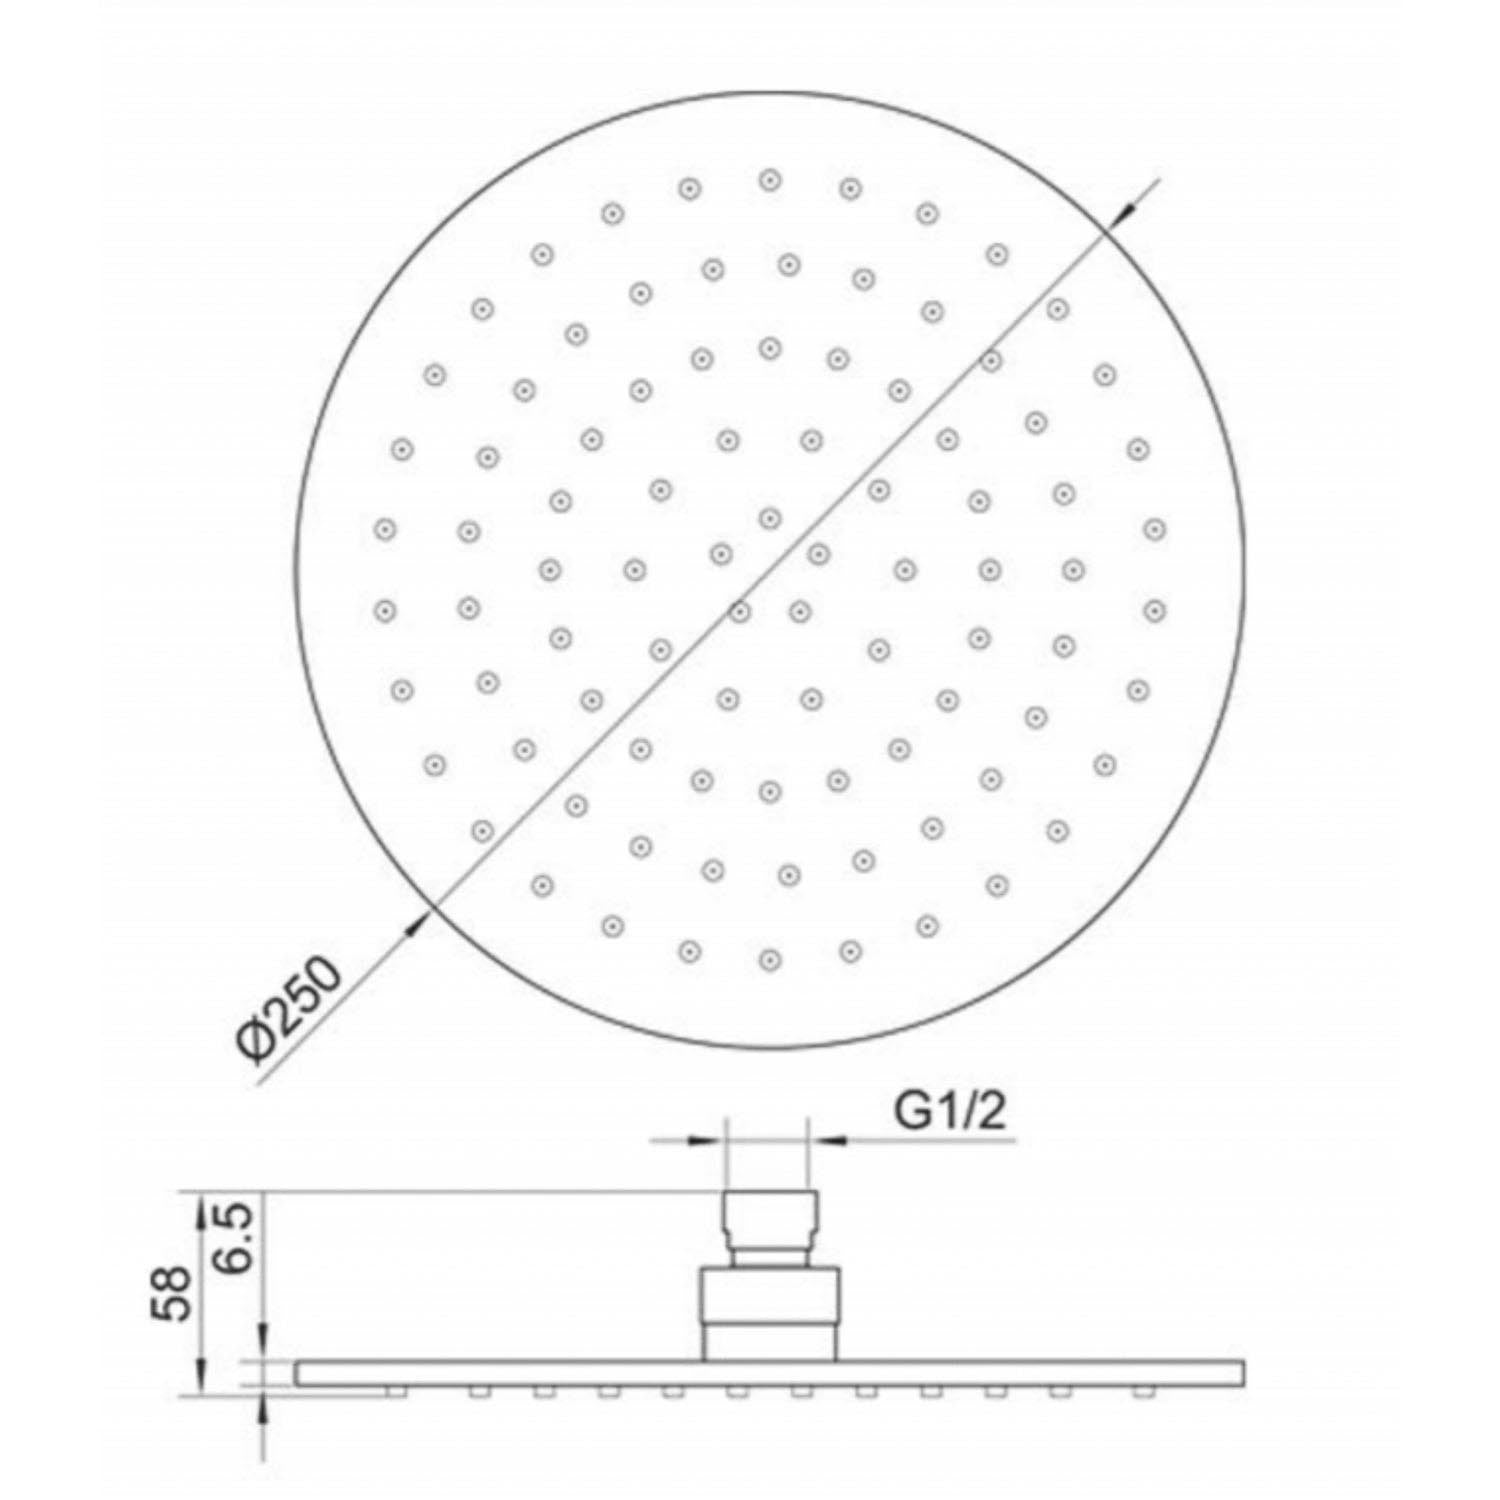 250mm Libero Rainwater Shower Head with a brushed brass finish dimensional drawing